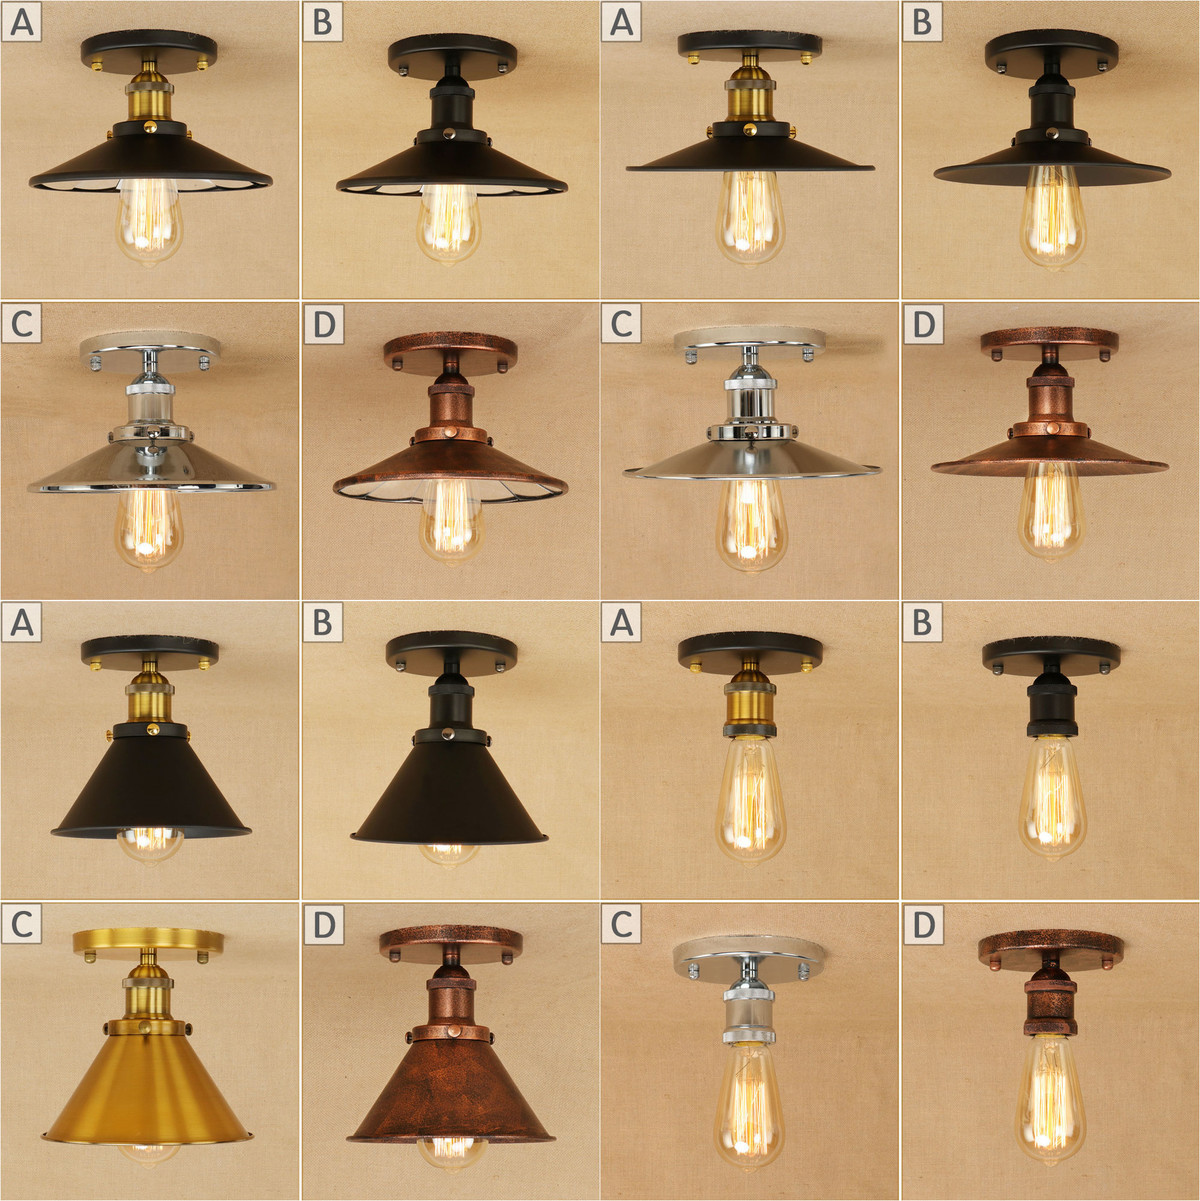 Retro Loft Vintage Pendant Lamp Led E27 AC 110V 220V Pendant Lights Decorative Luminaire For Bedroom Living Room Bathroom Bar new arrival vintage pendant lamp modern retro industrial pendant lights for restaurant bar living room bedroom 220v e27 holder